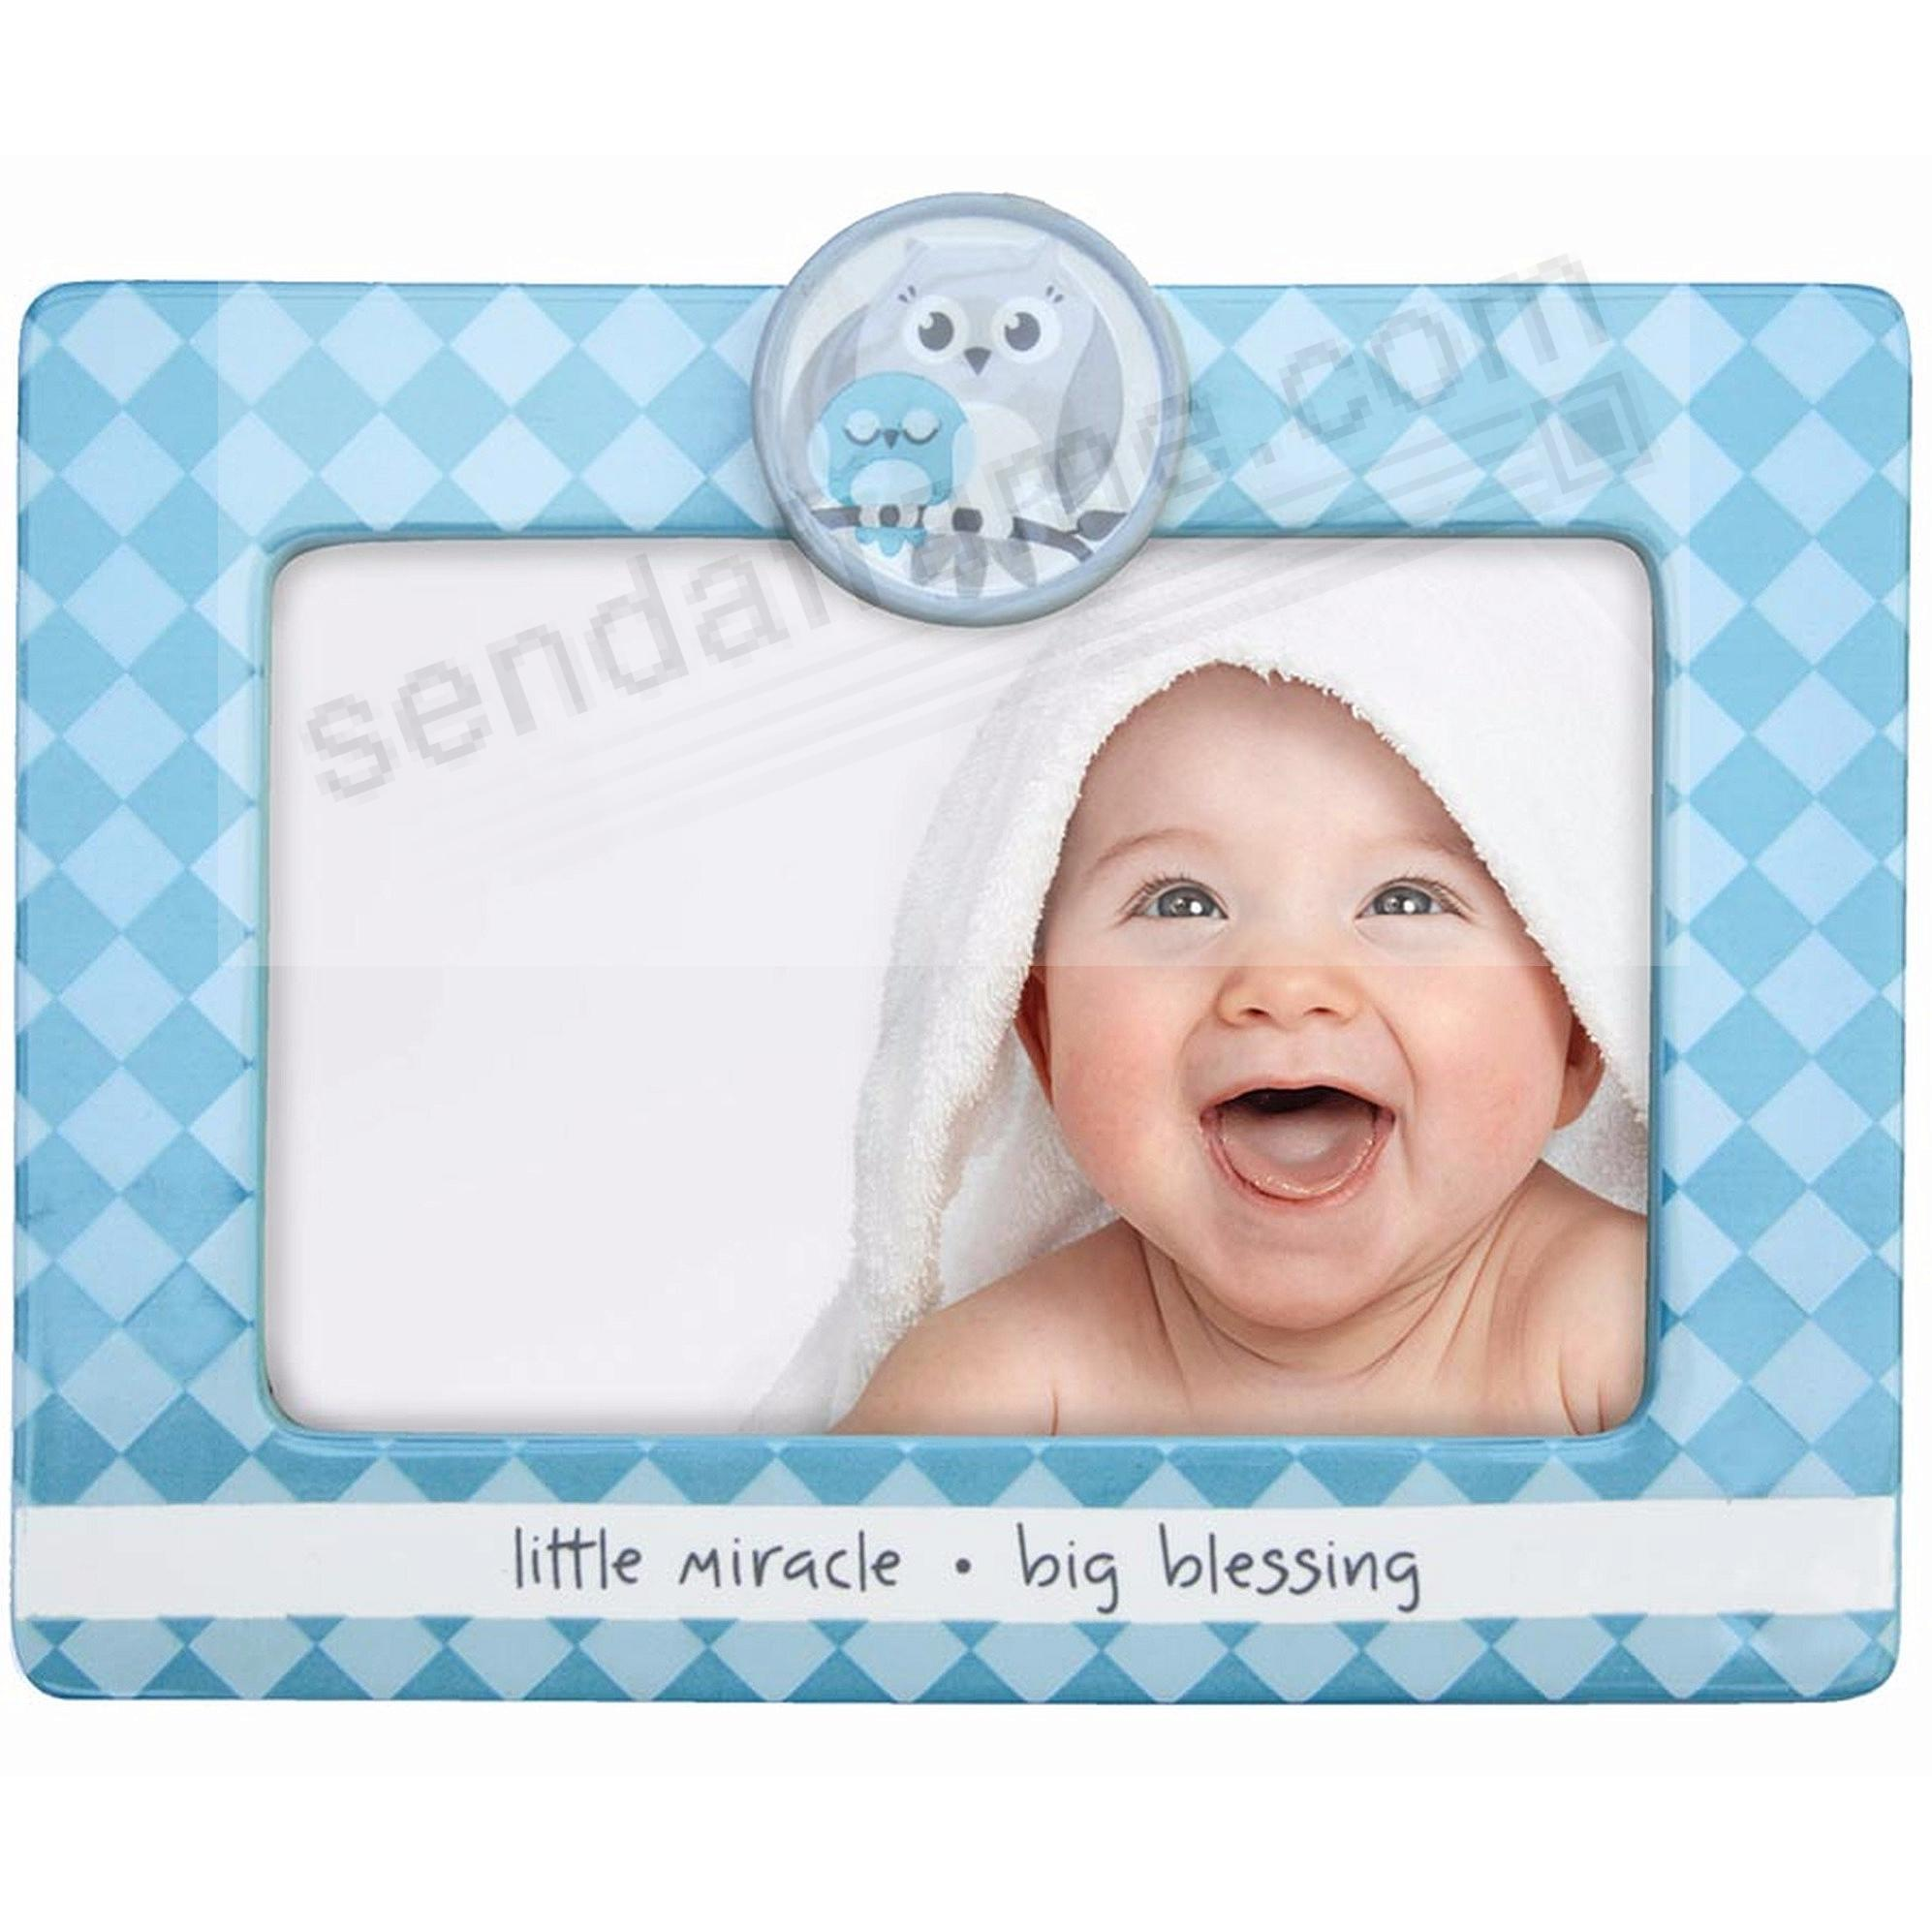 Adorable little miracle big blessing blue baby frame picture adorable little miracle big blessing blue baby frame jeuxipadfo Choice Image